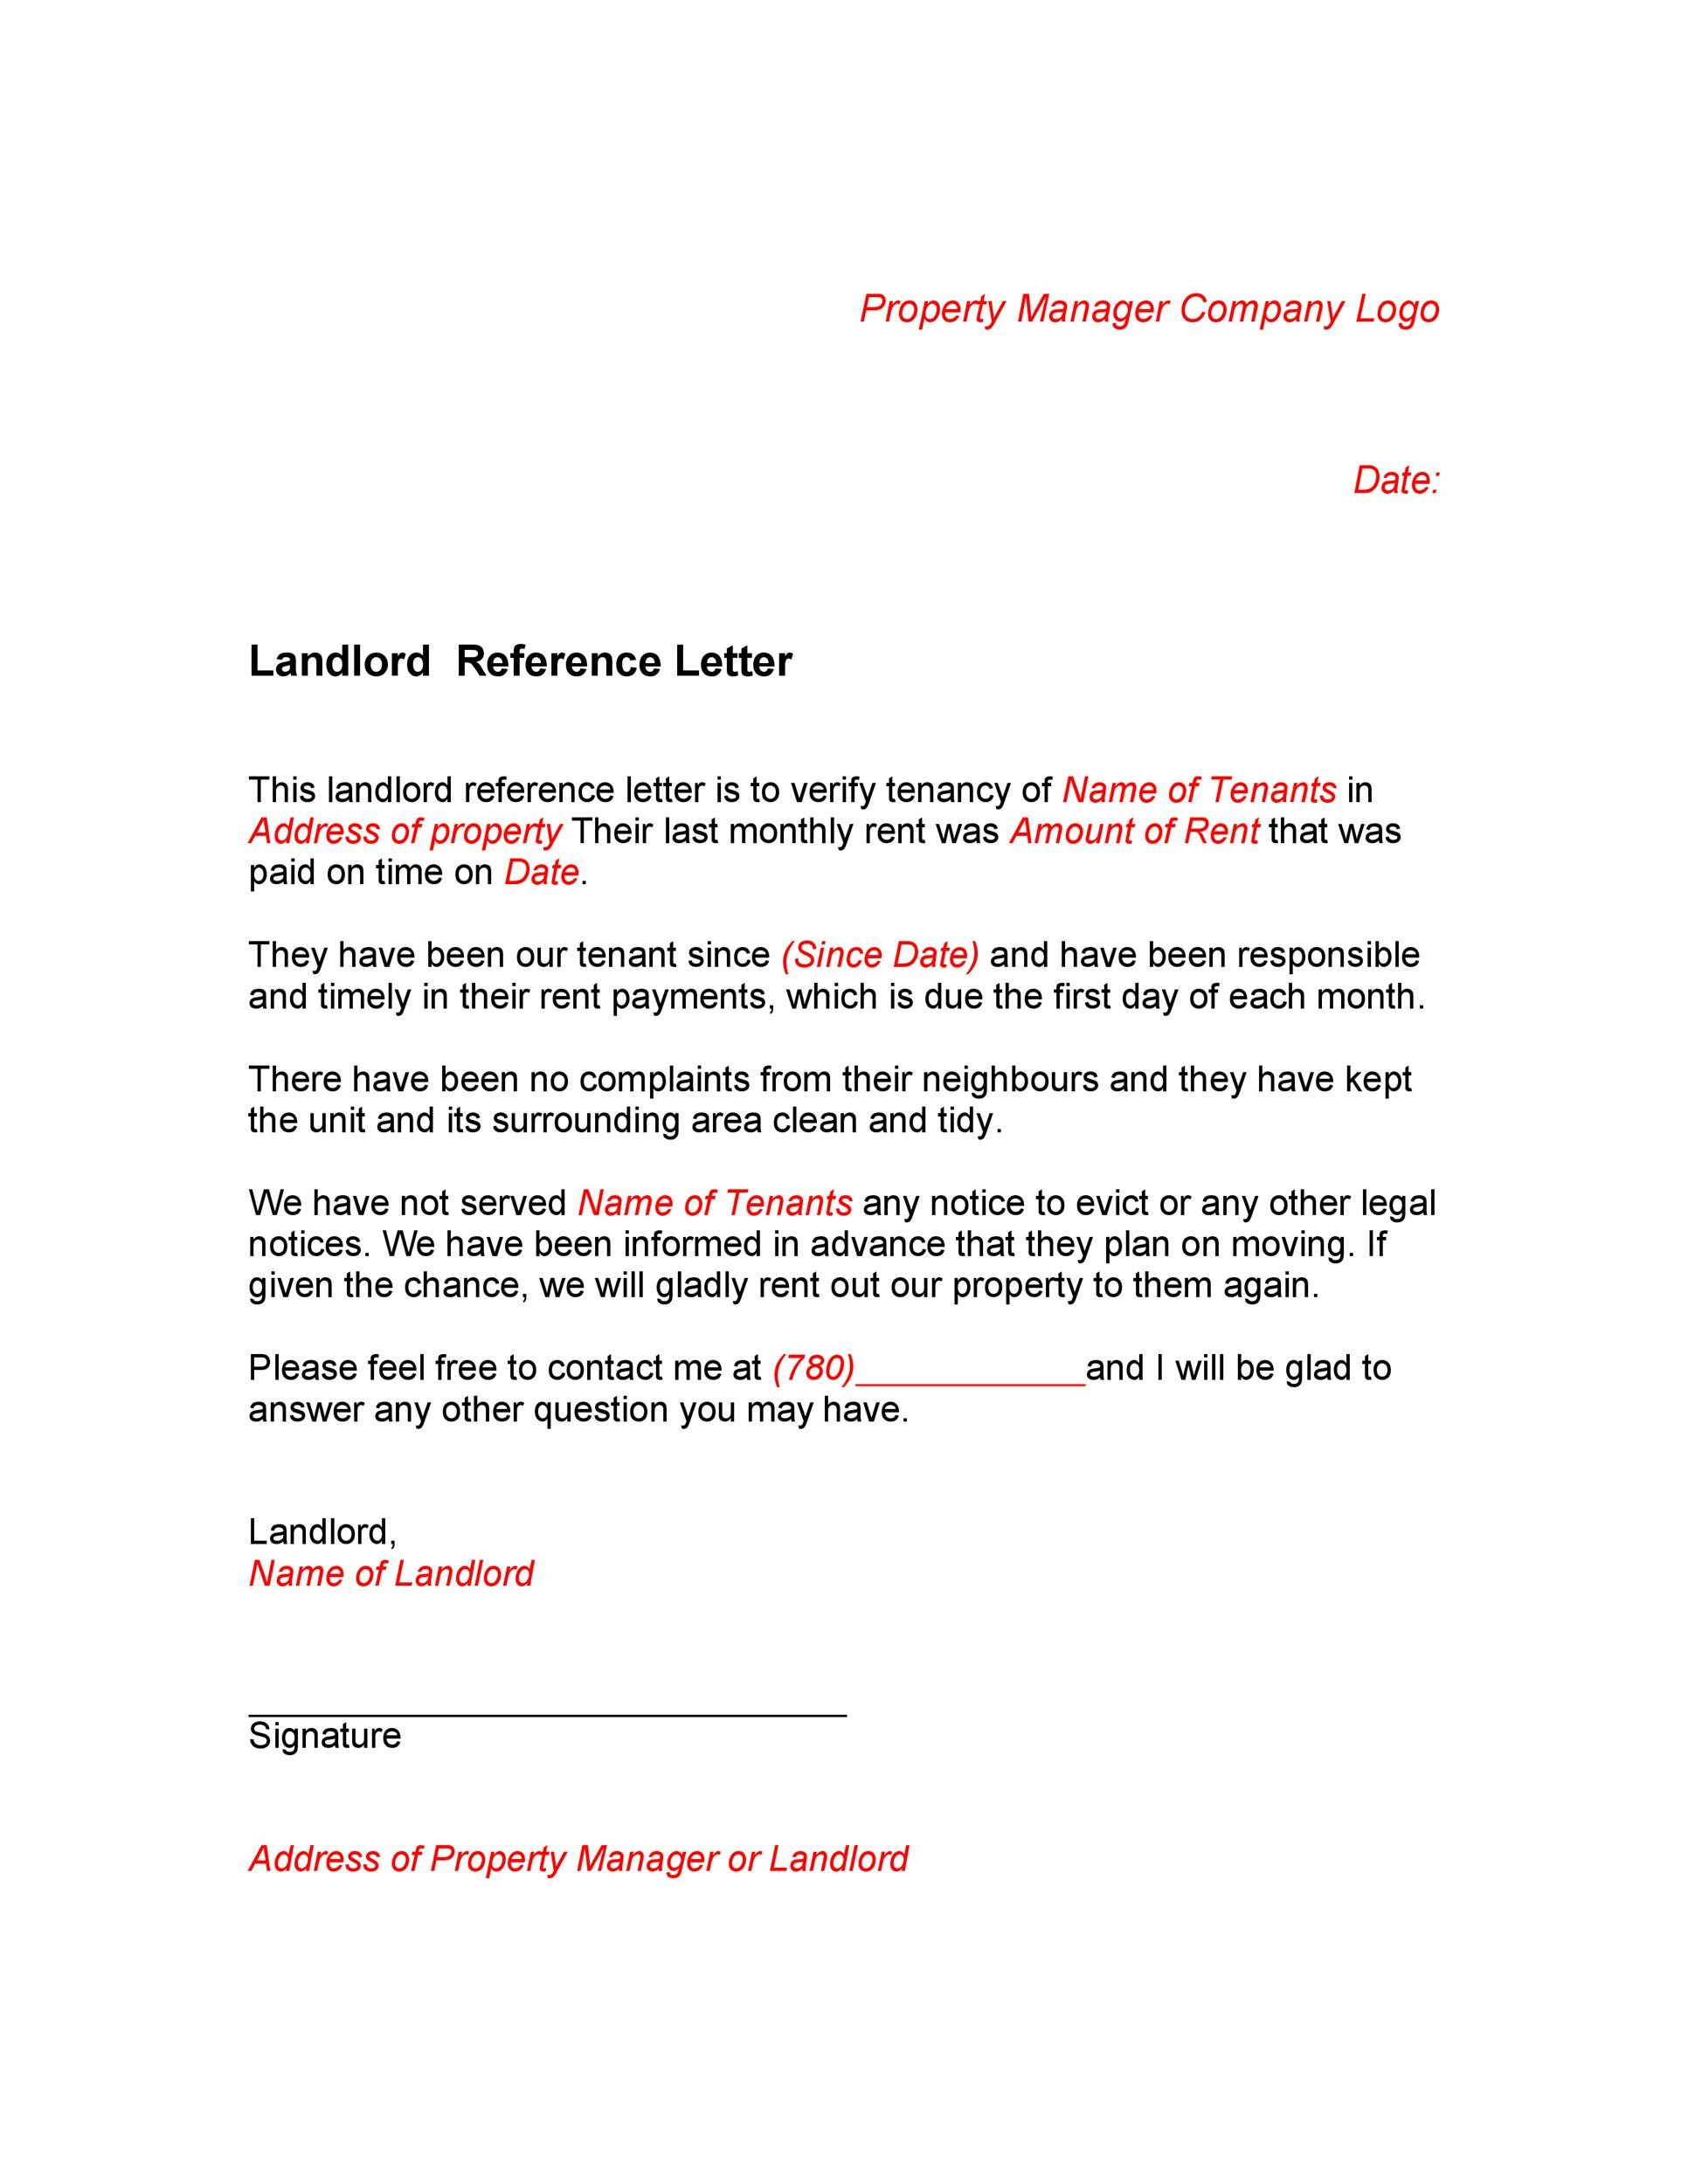 reference letter from landlord template - 40 landlord reference letters form samples template lab